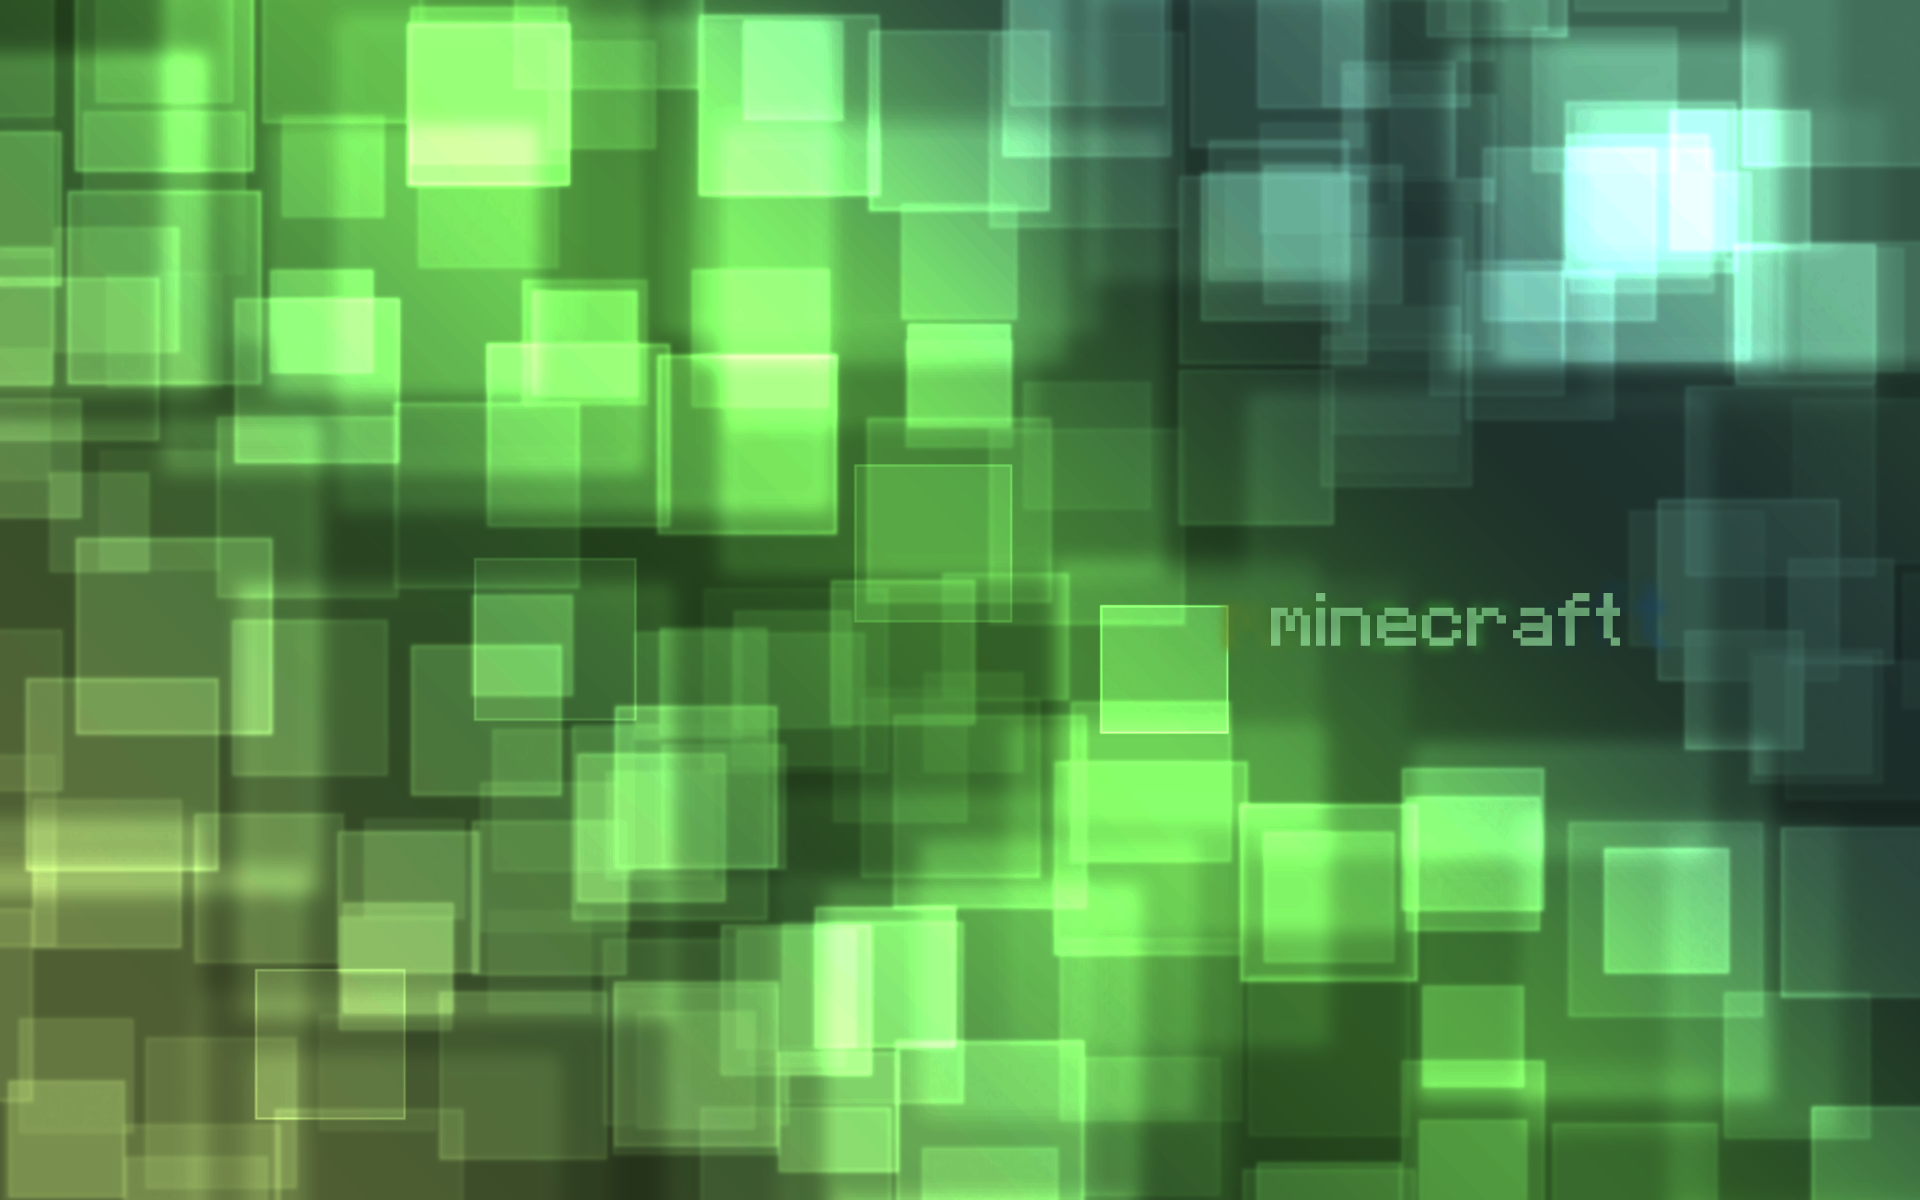 Minecraft abstract wallpaper by